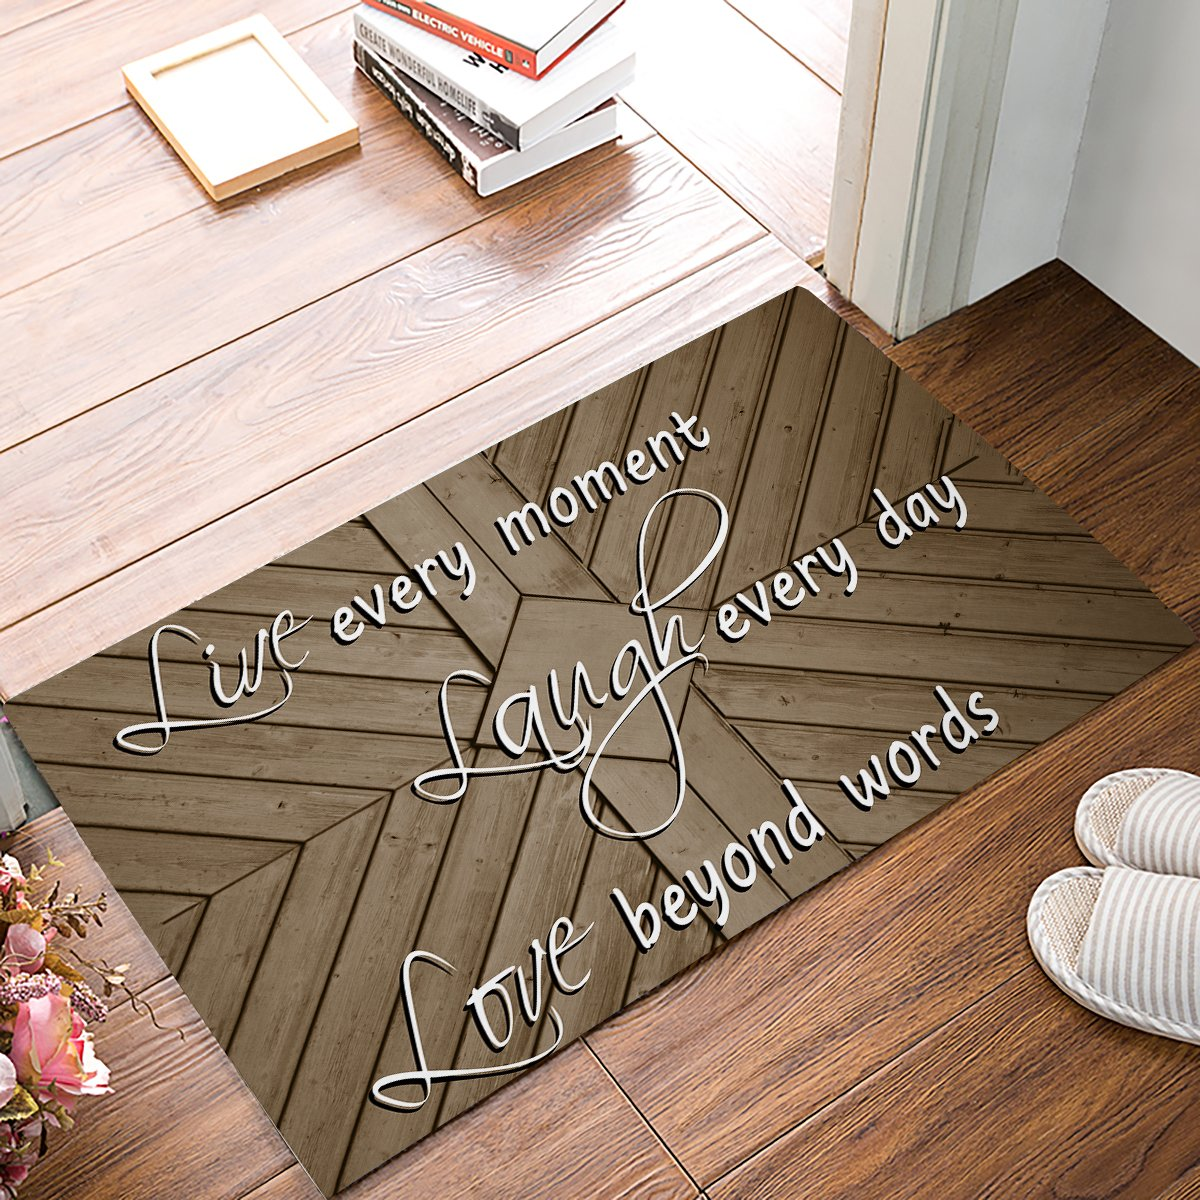 18 x 30 Inch Live Every Moment Laugh Every Day Love Beyond Words - Door Mats Kitchen Floor Bath Entrance Rug Mat Absorbent Indoor Bathroom Decor Doormats Rubber Non Slip Brown Wood